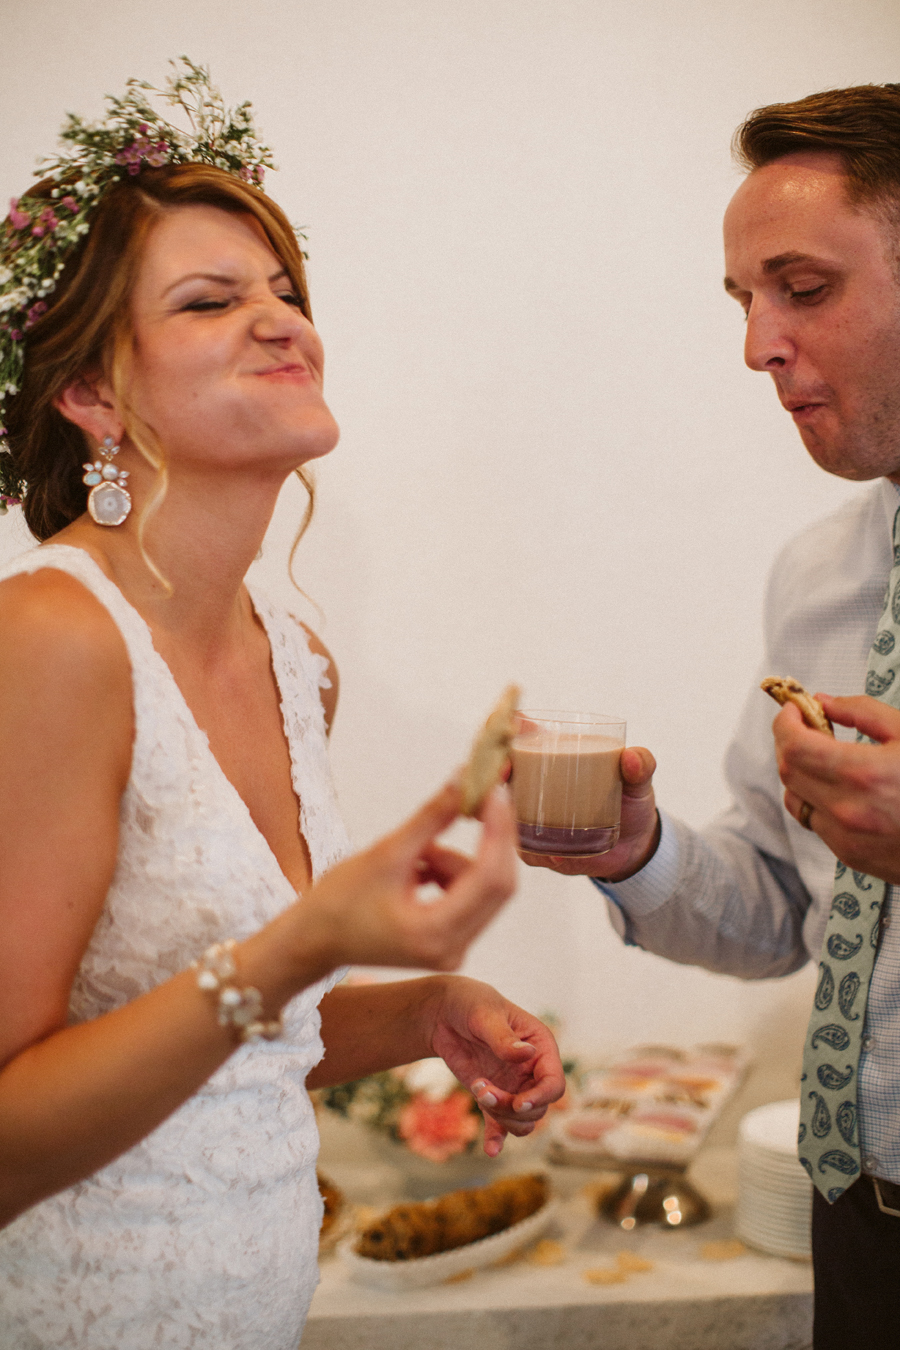 Seattle Wedding, Boho Bride BHLDN Bridal Gown Milk and Cookie Bar photos by Reese Ferguson